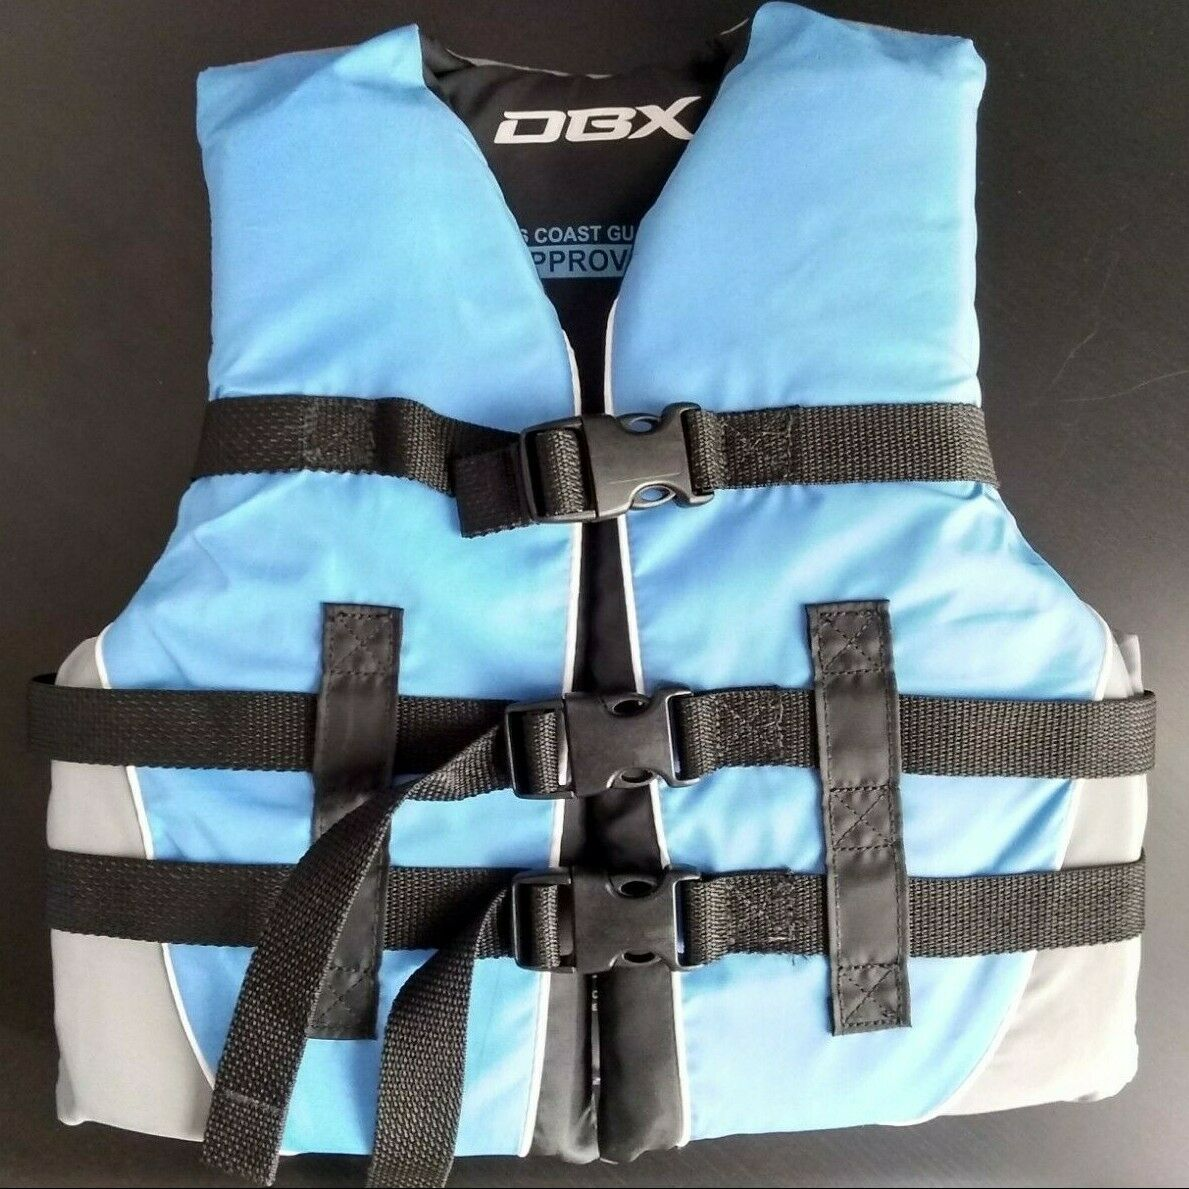 DBX Youth Kids Flotation Aid Life Vest Jacket Vest Size Youth 50-90 Lb Swim Boat